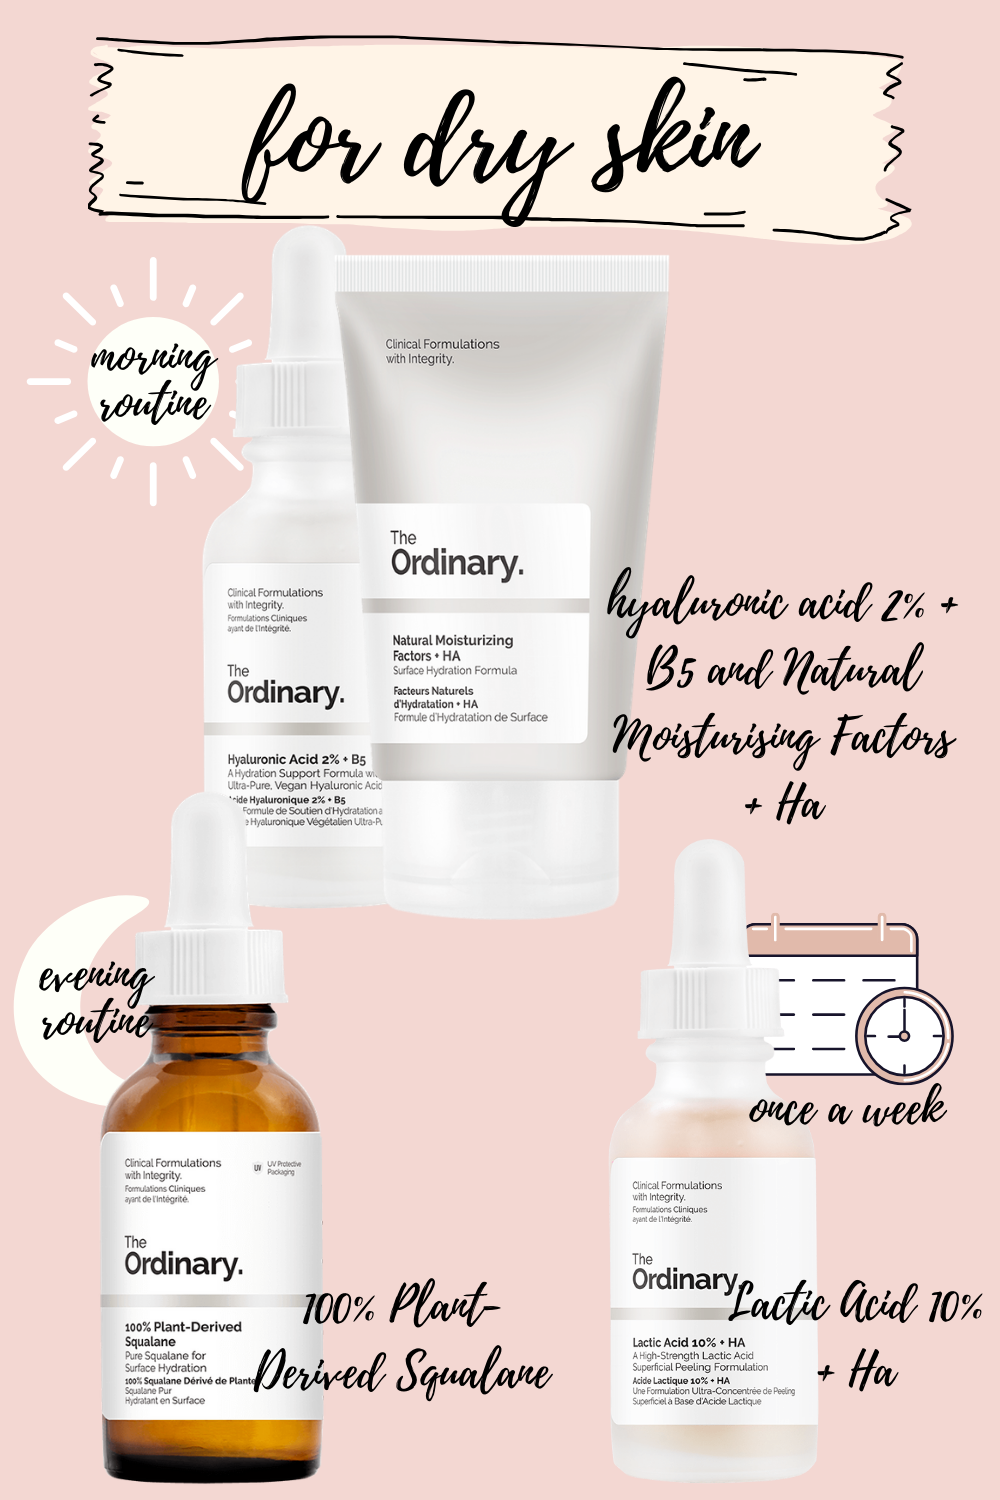 the ordinary skincare routine for dry skin